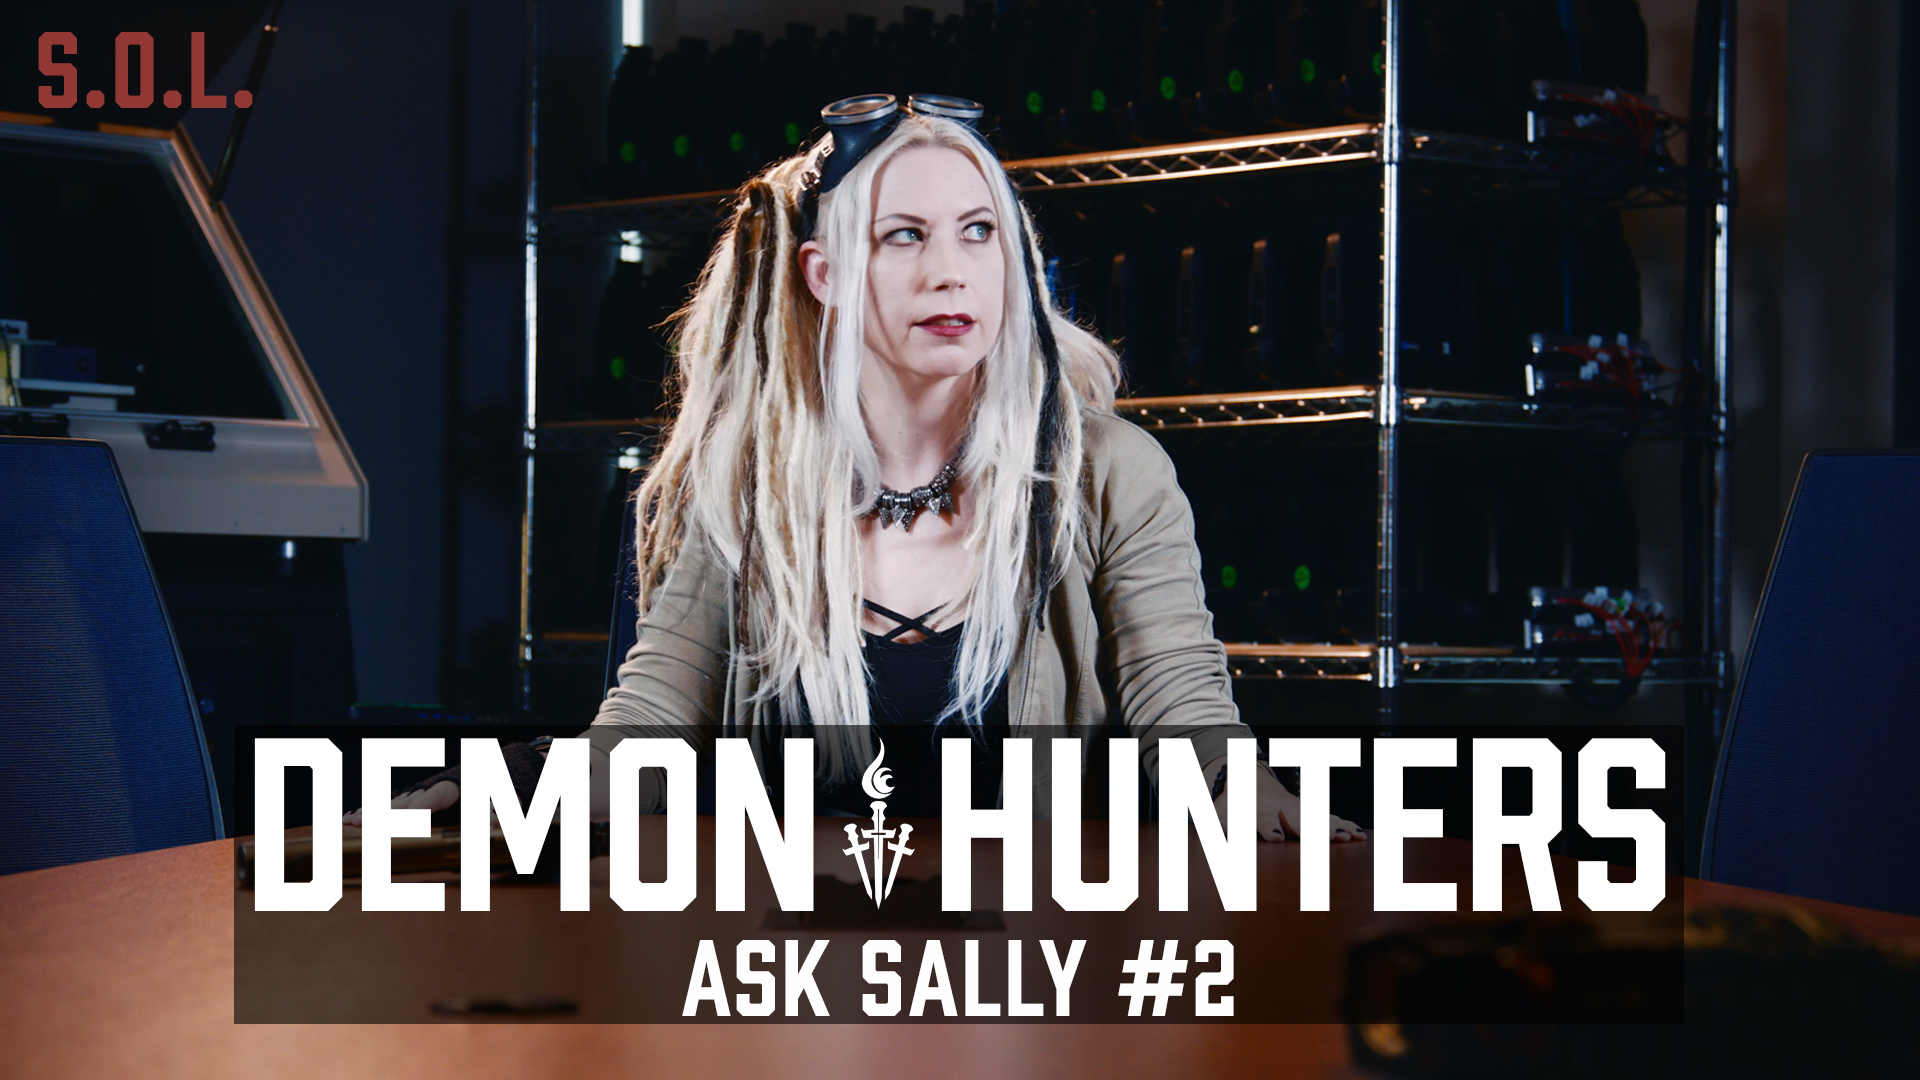 Demon Hunters: Ask Sally Question No 2